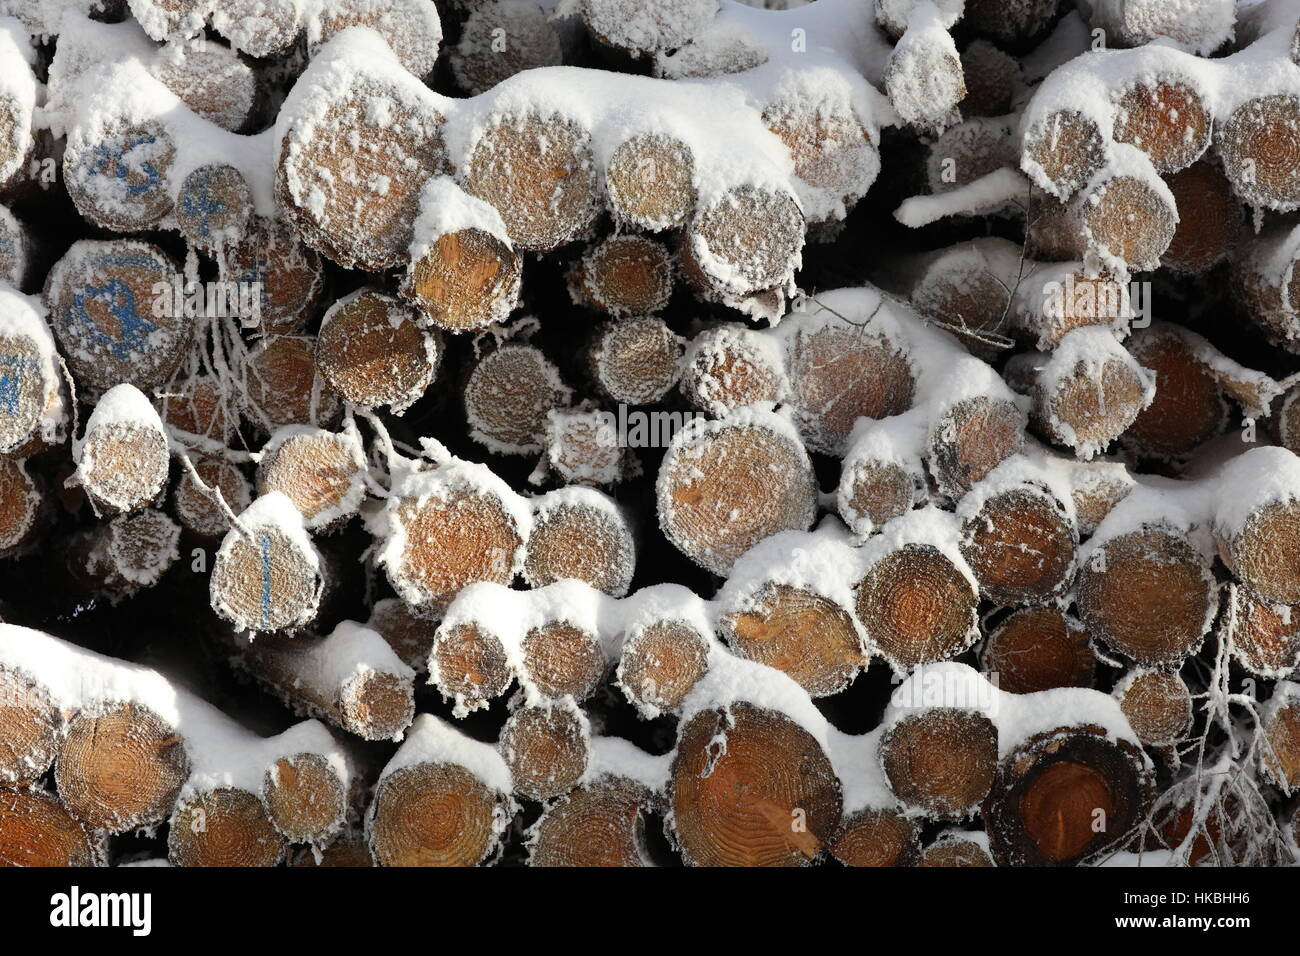 Felled trees in forest - Stock Image